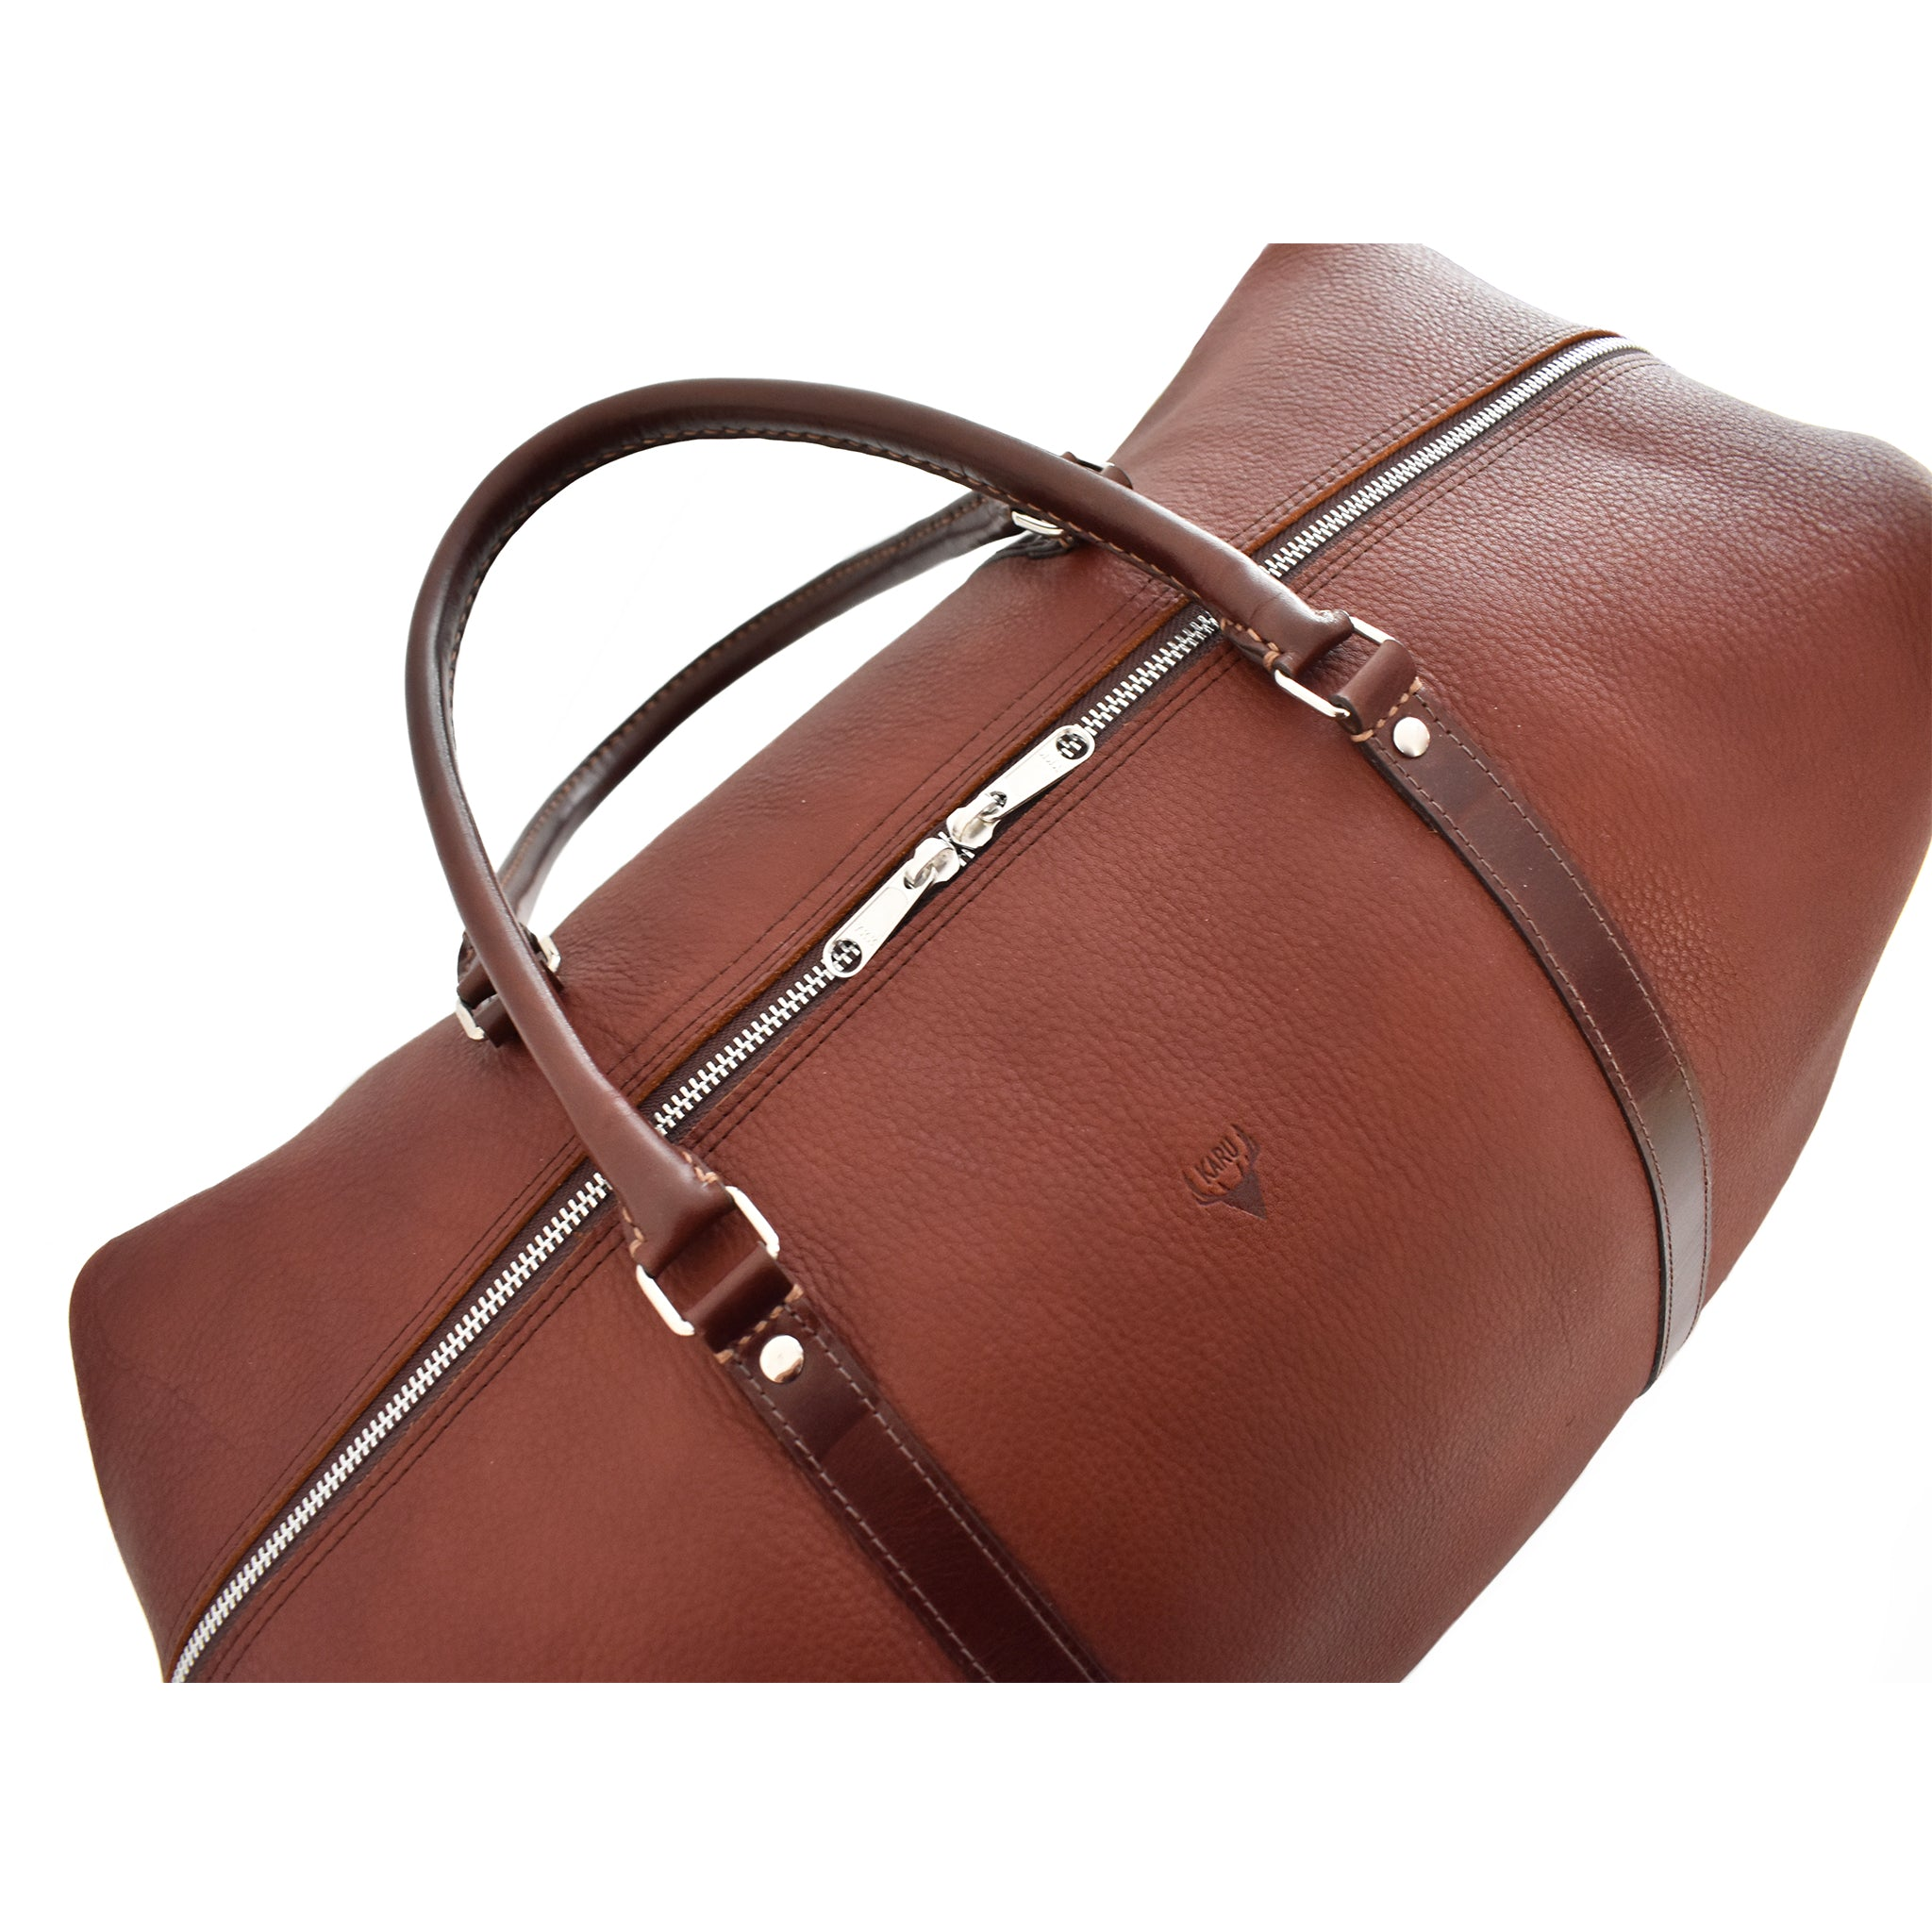 Carryall Travel Bag handcrafted from brown leather top picture